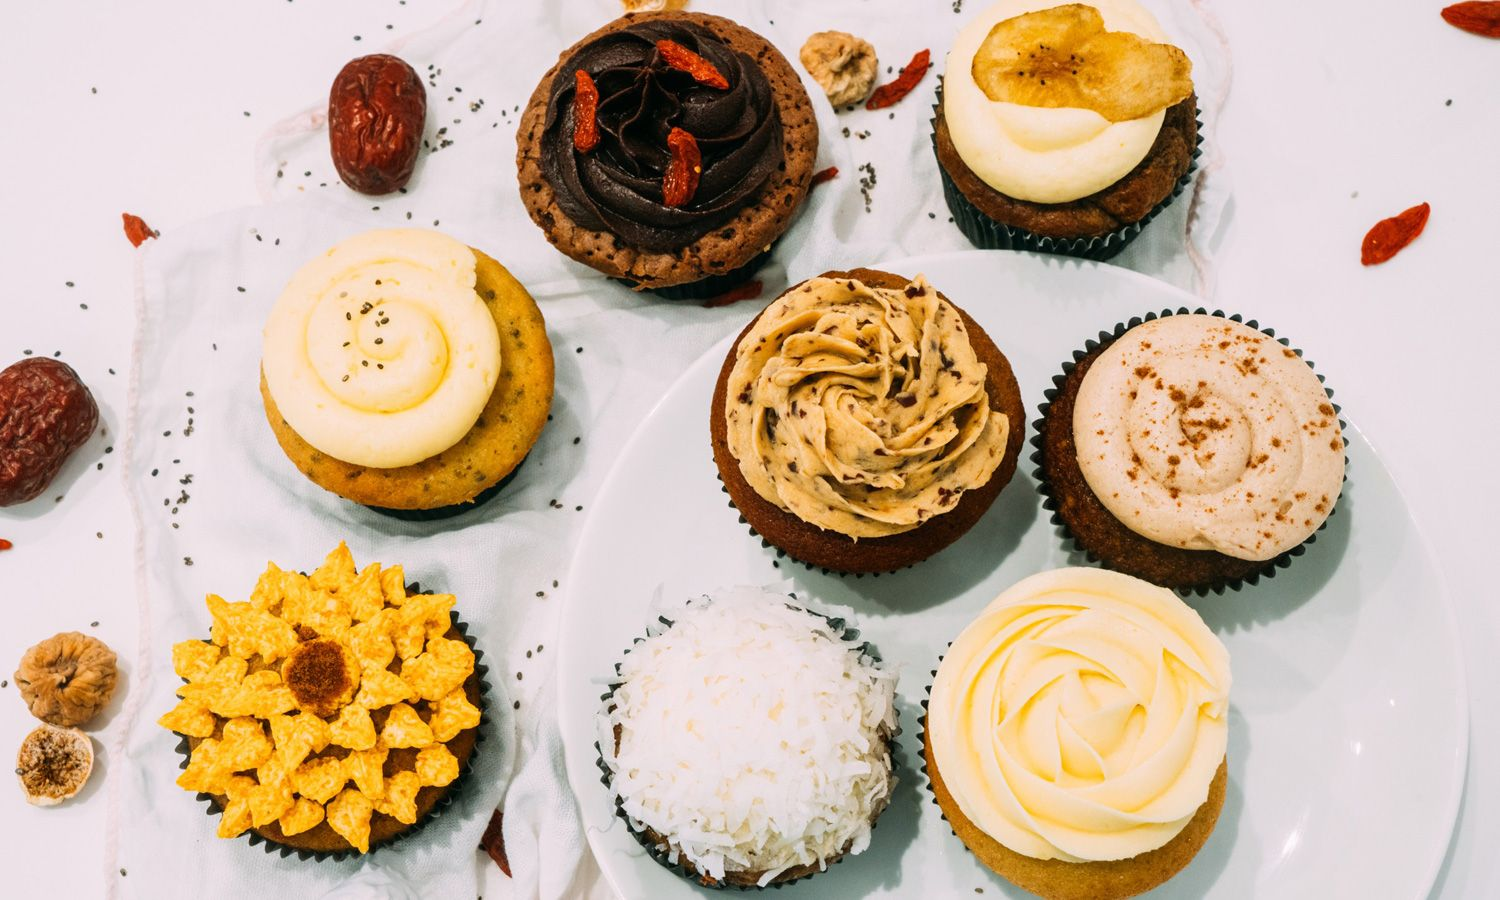 The Cakery Debuts with Pop Up Shop at Landmark Central